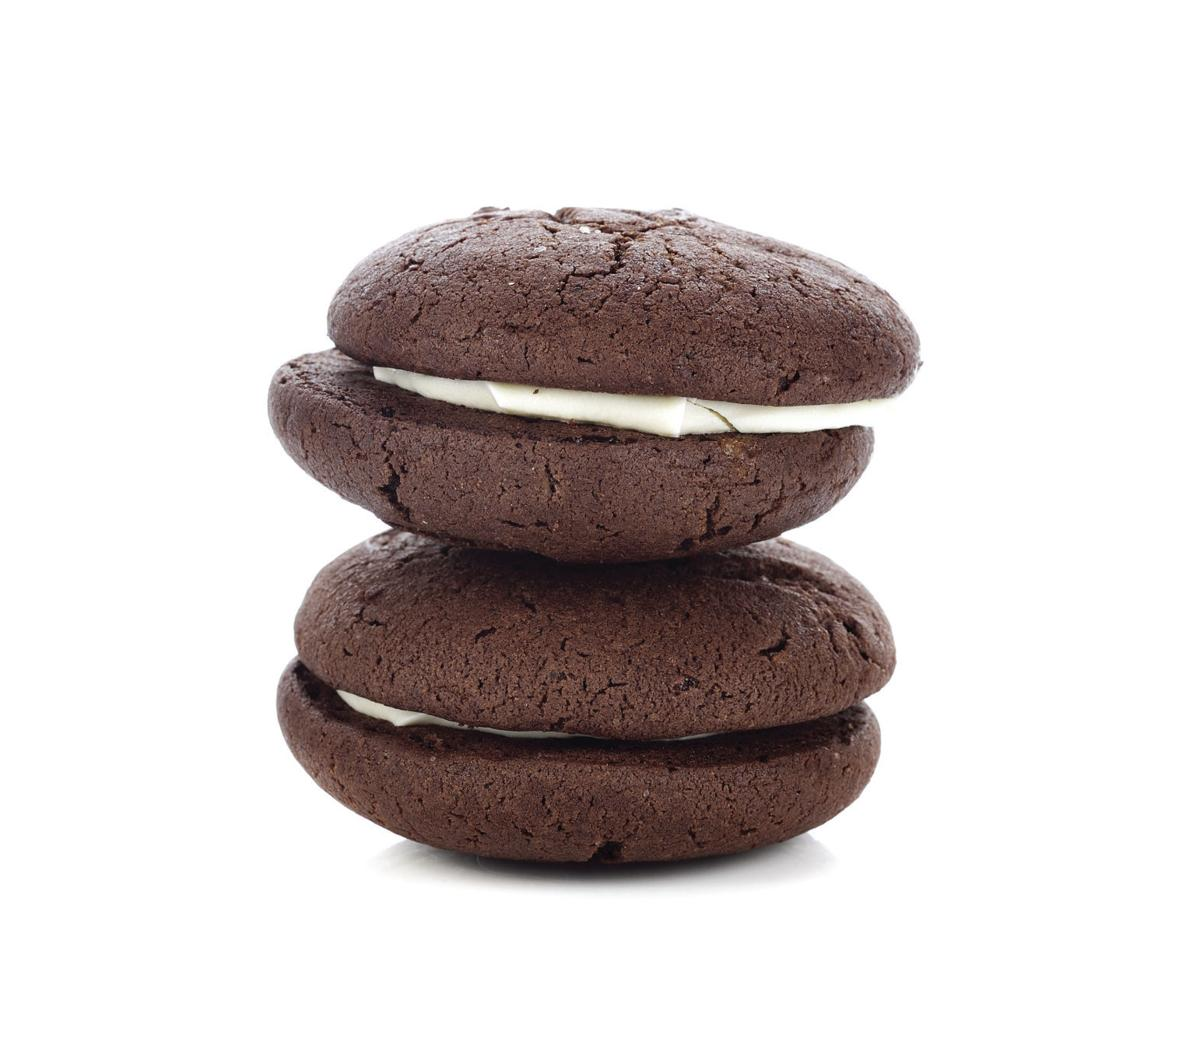 Chocolate whoopie pie on white background